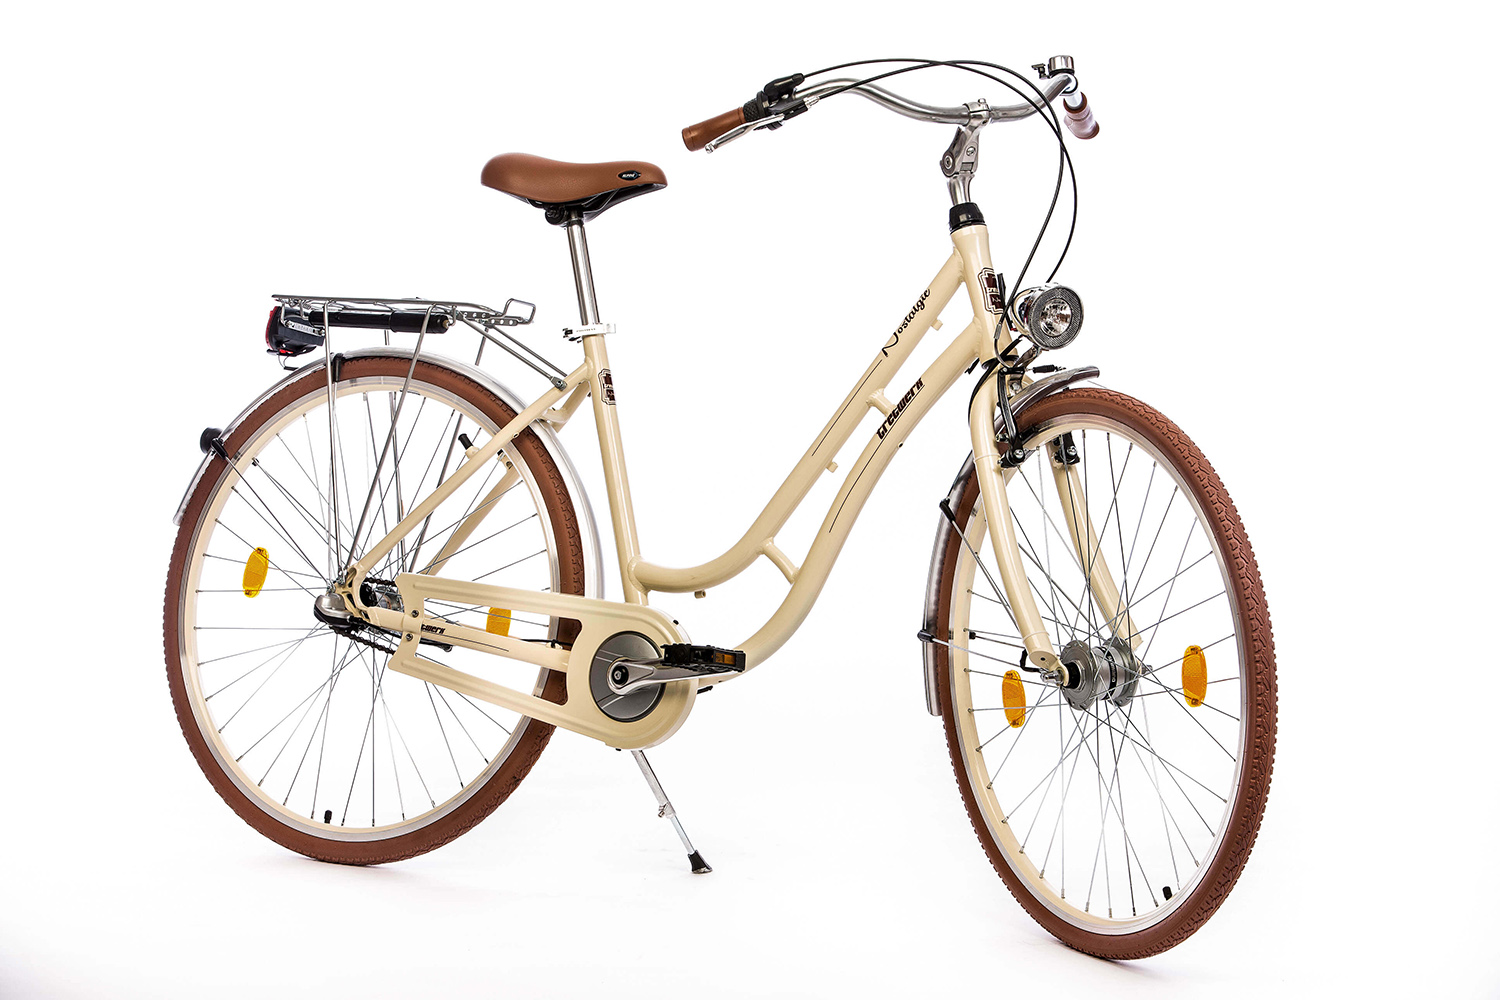 tretwerk nostalgie 28 zoll citybike creme 3 gang 2016. Black Bedroom Furniture Sets. Home Design Ideas